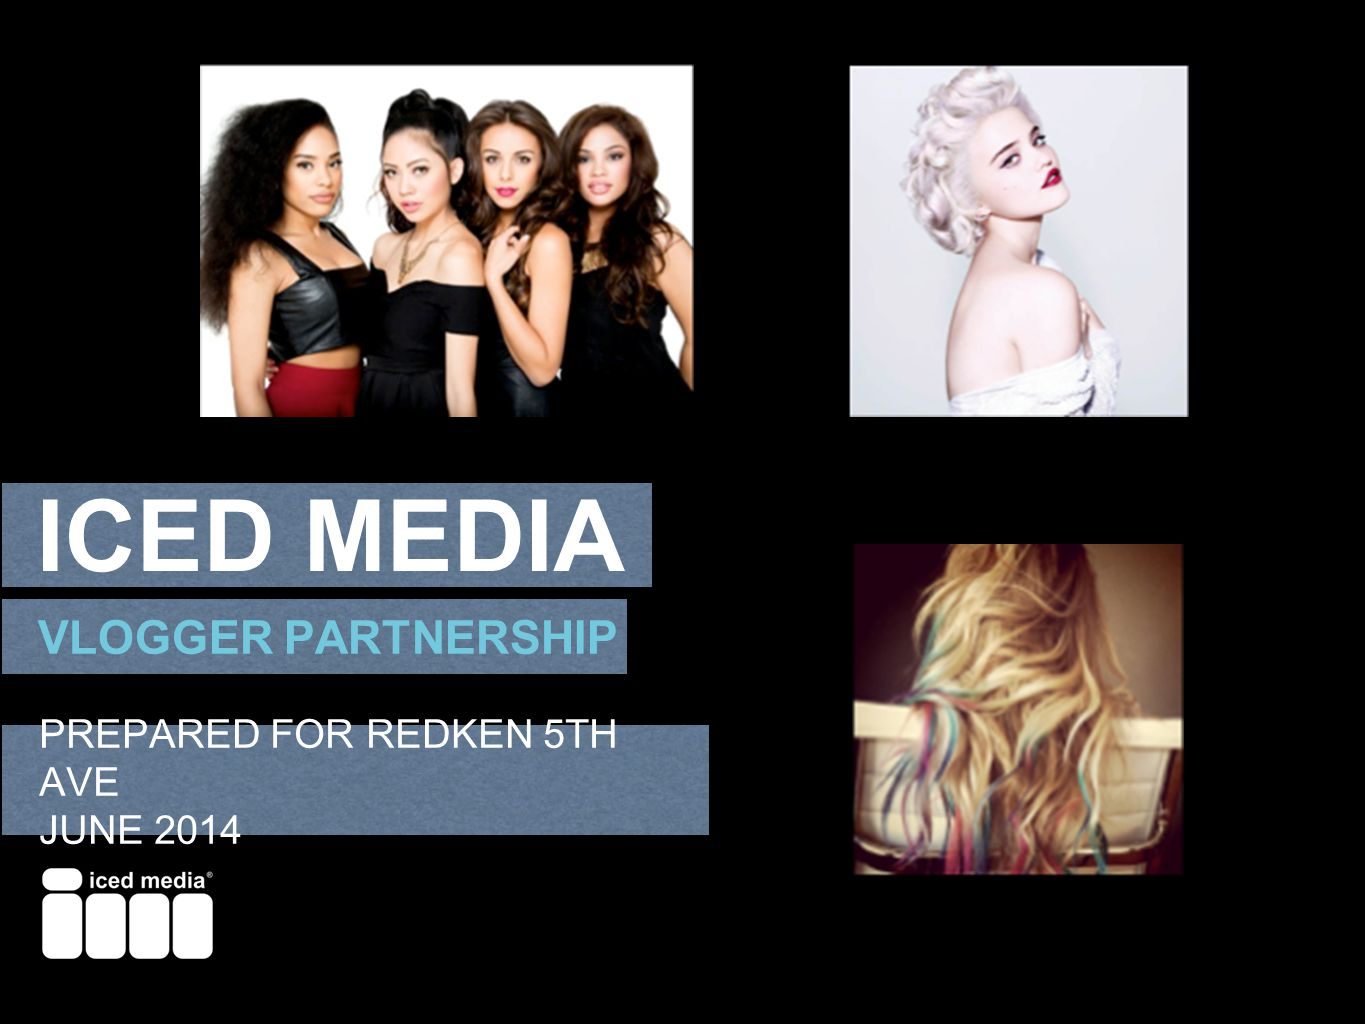 VLOGGER PARTNERSHIP PREPARED FOR REDKEN 5TH AVE JUNE 2014 ICED MEDIA